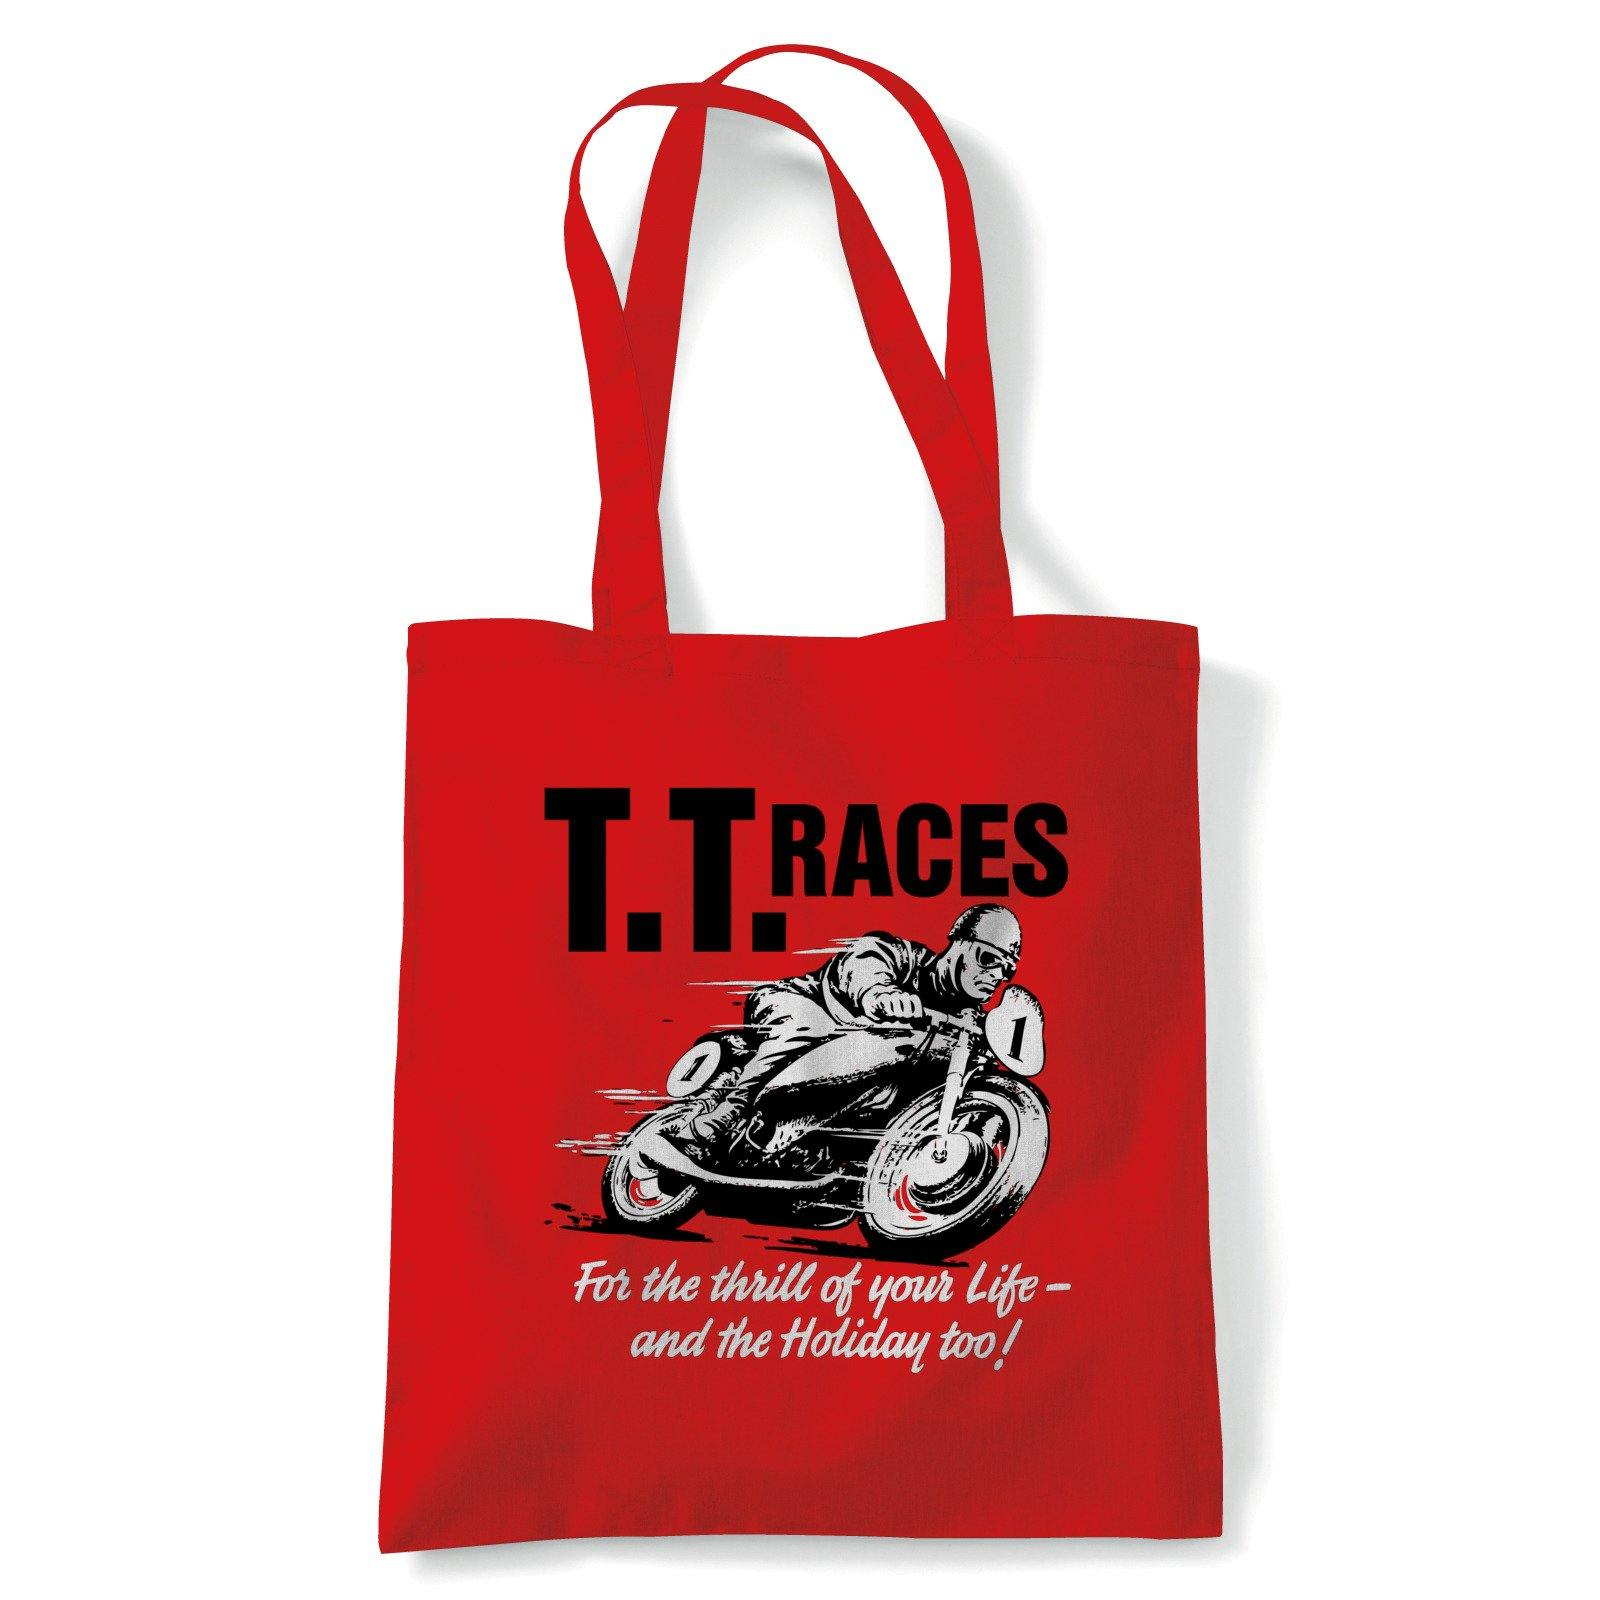 TT Races Retro Motorcycle Tote | Isle of Man TT Formula 1 Superbikes Touring Cars | Reusable Shopping Cotton Canvas Long Handled Natural Shopper Eco-Friendly Fashion